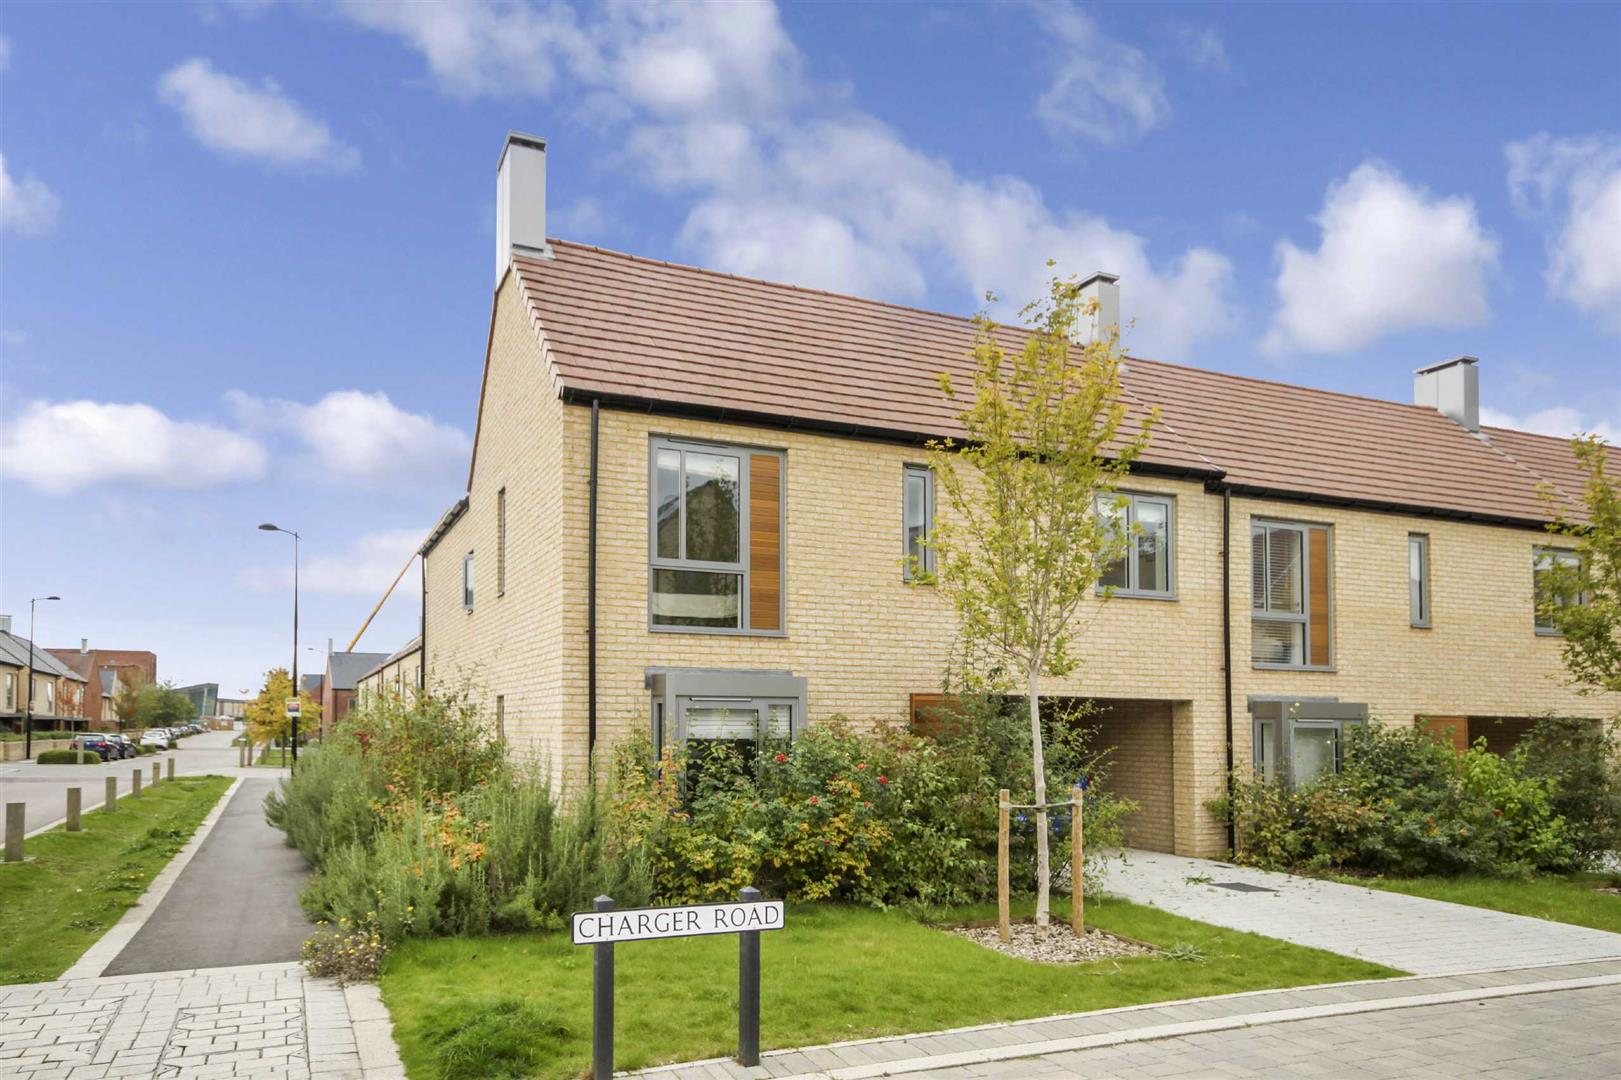 3 bedroom house for sale charger road trumpington cambridge cb cb2 9ea for 3 bedroom house for sale in cambridge